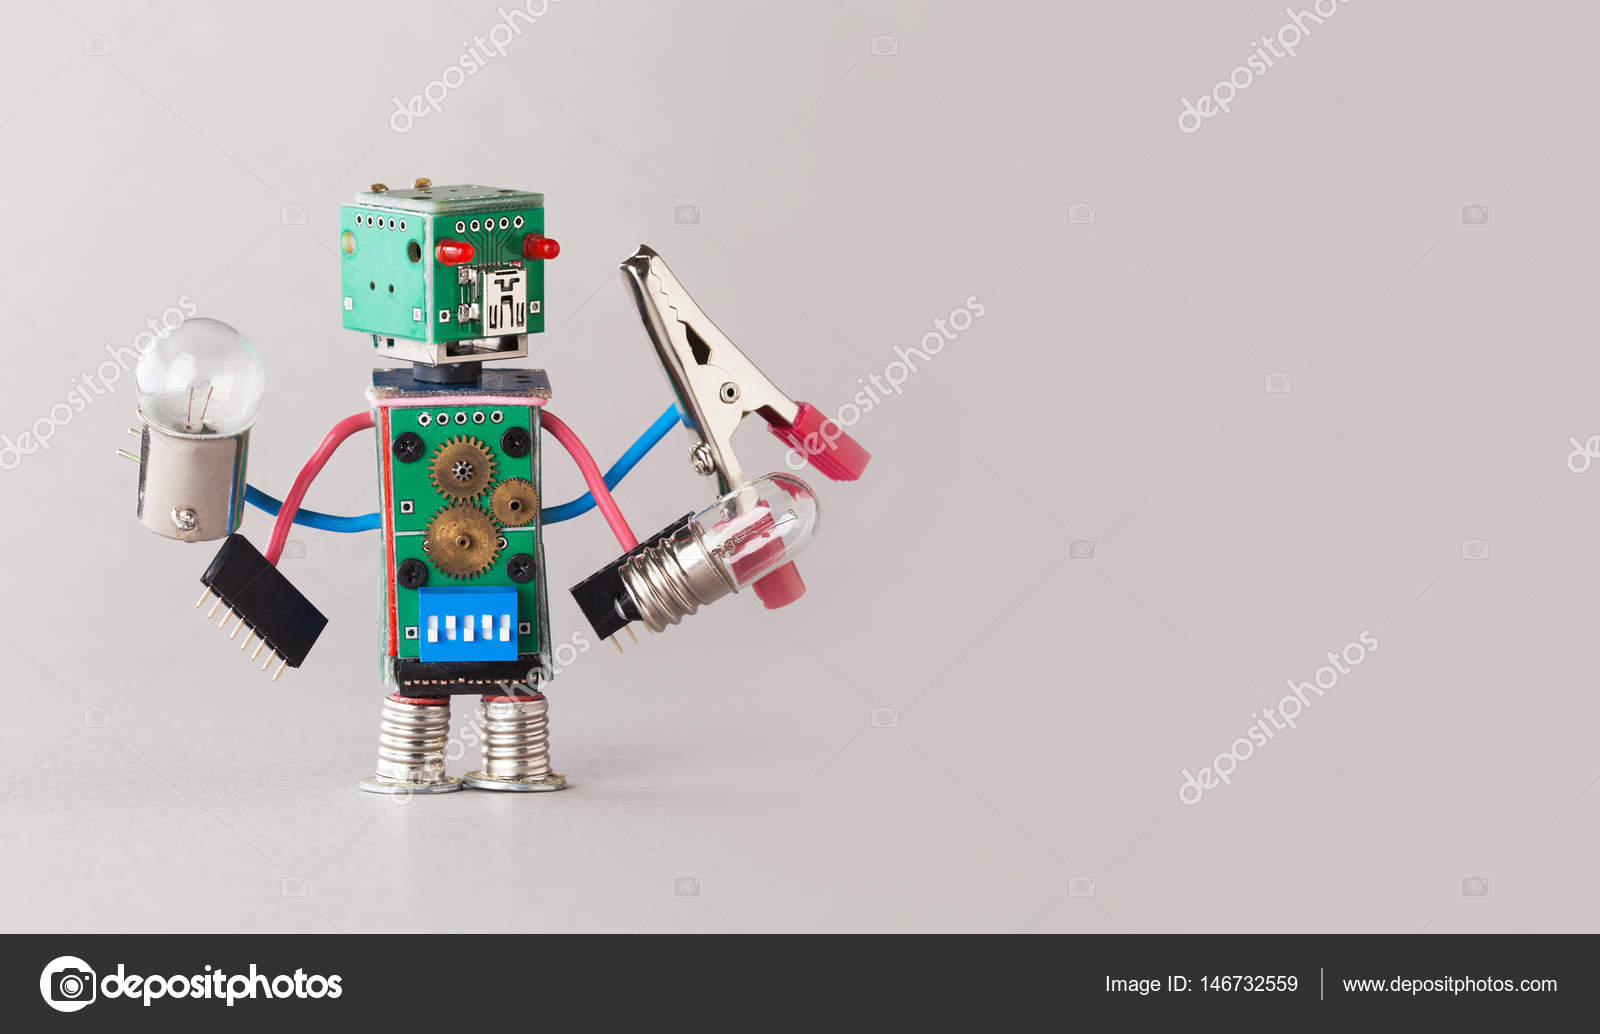 Multifunctional Electrician Robot With Light Bulbs And Pliers In Circuit Board Four Hands Colorful Toy